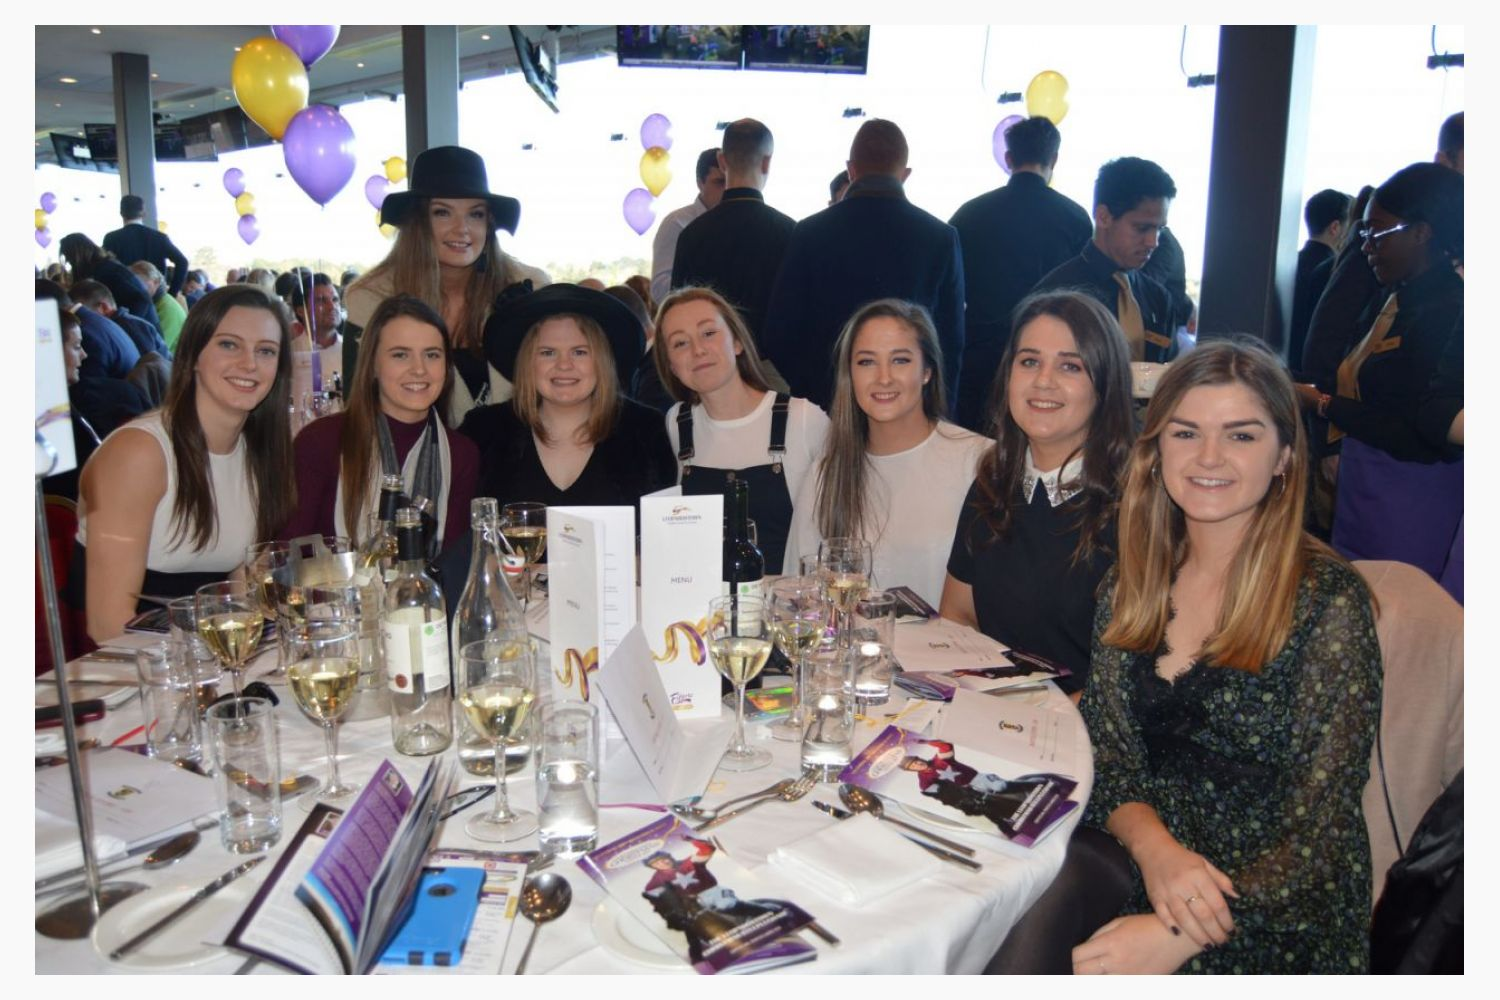 2017 Lexus Race Day at Leopardstown